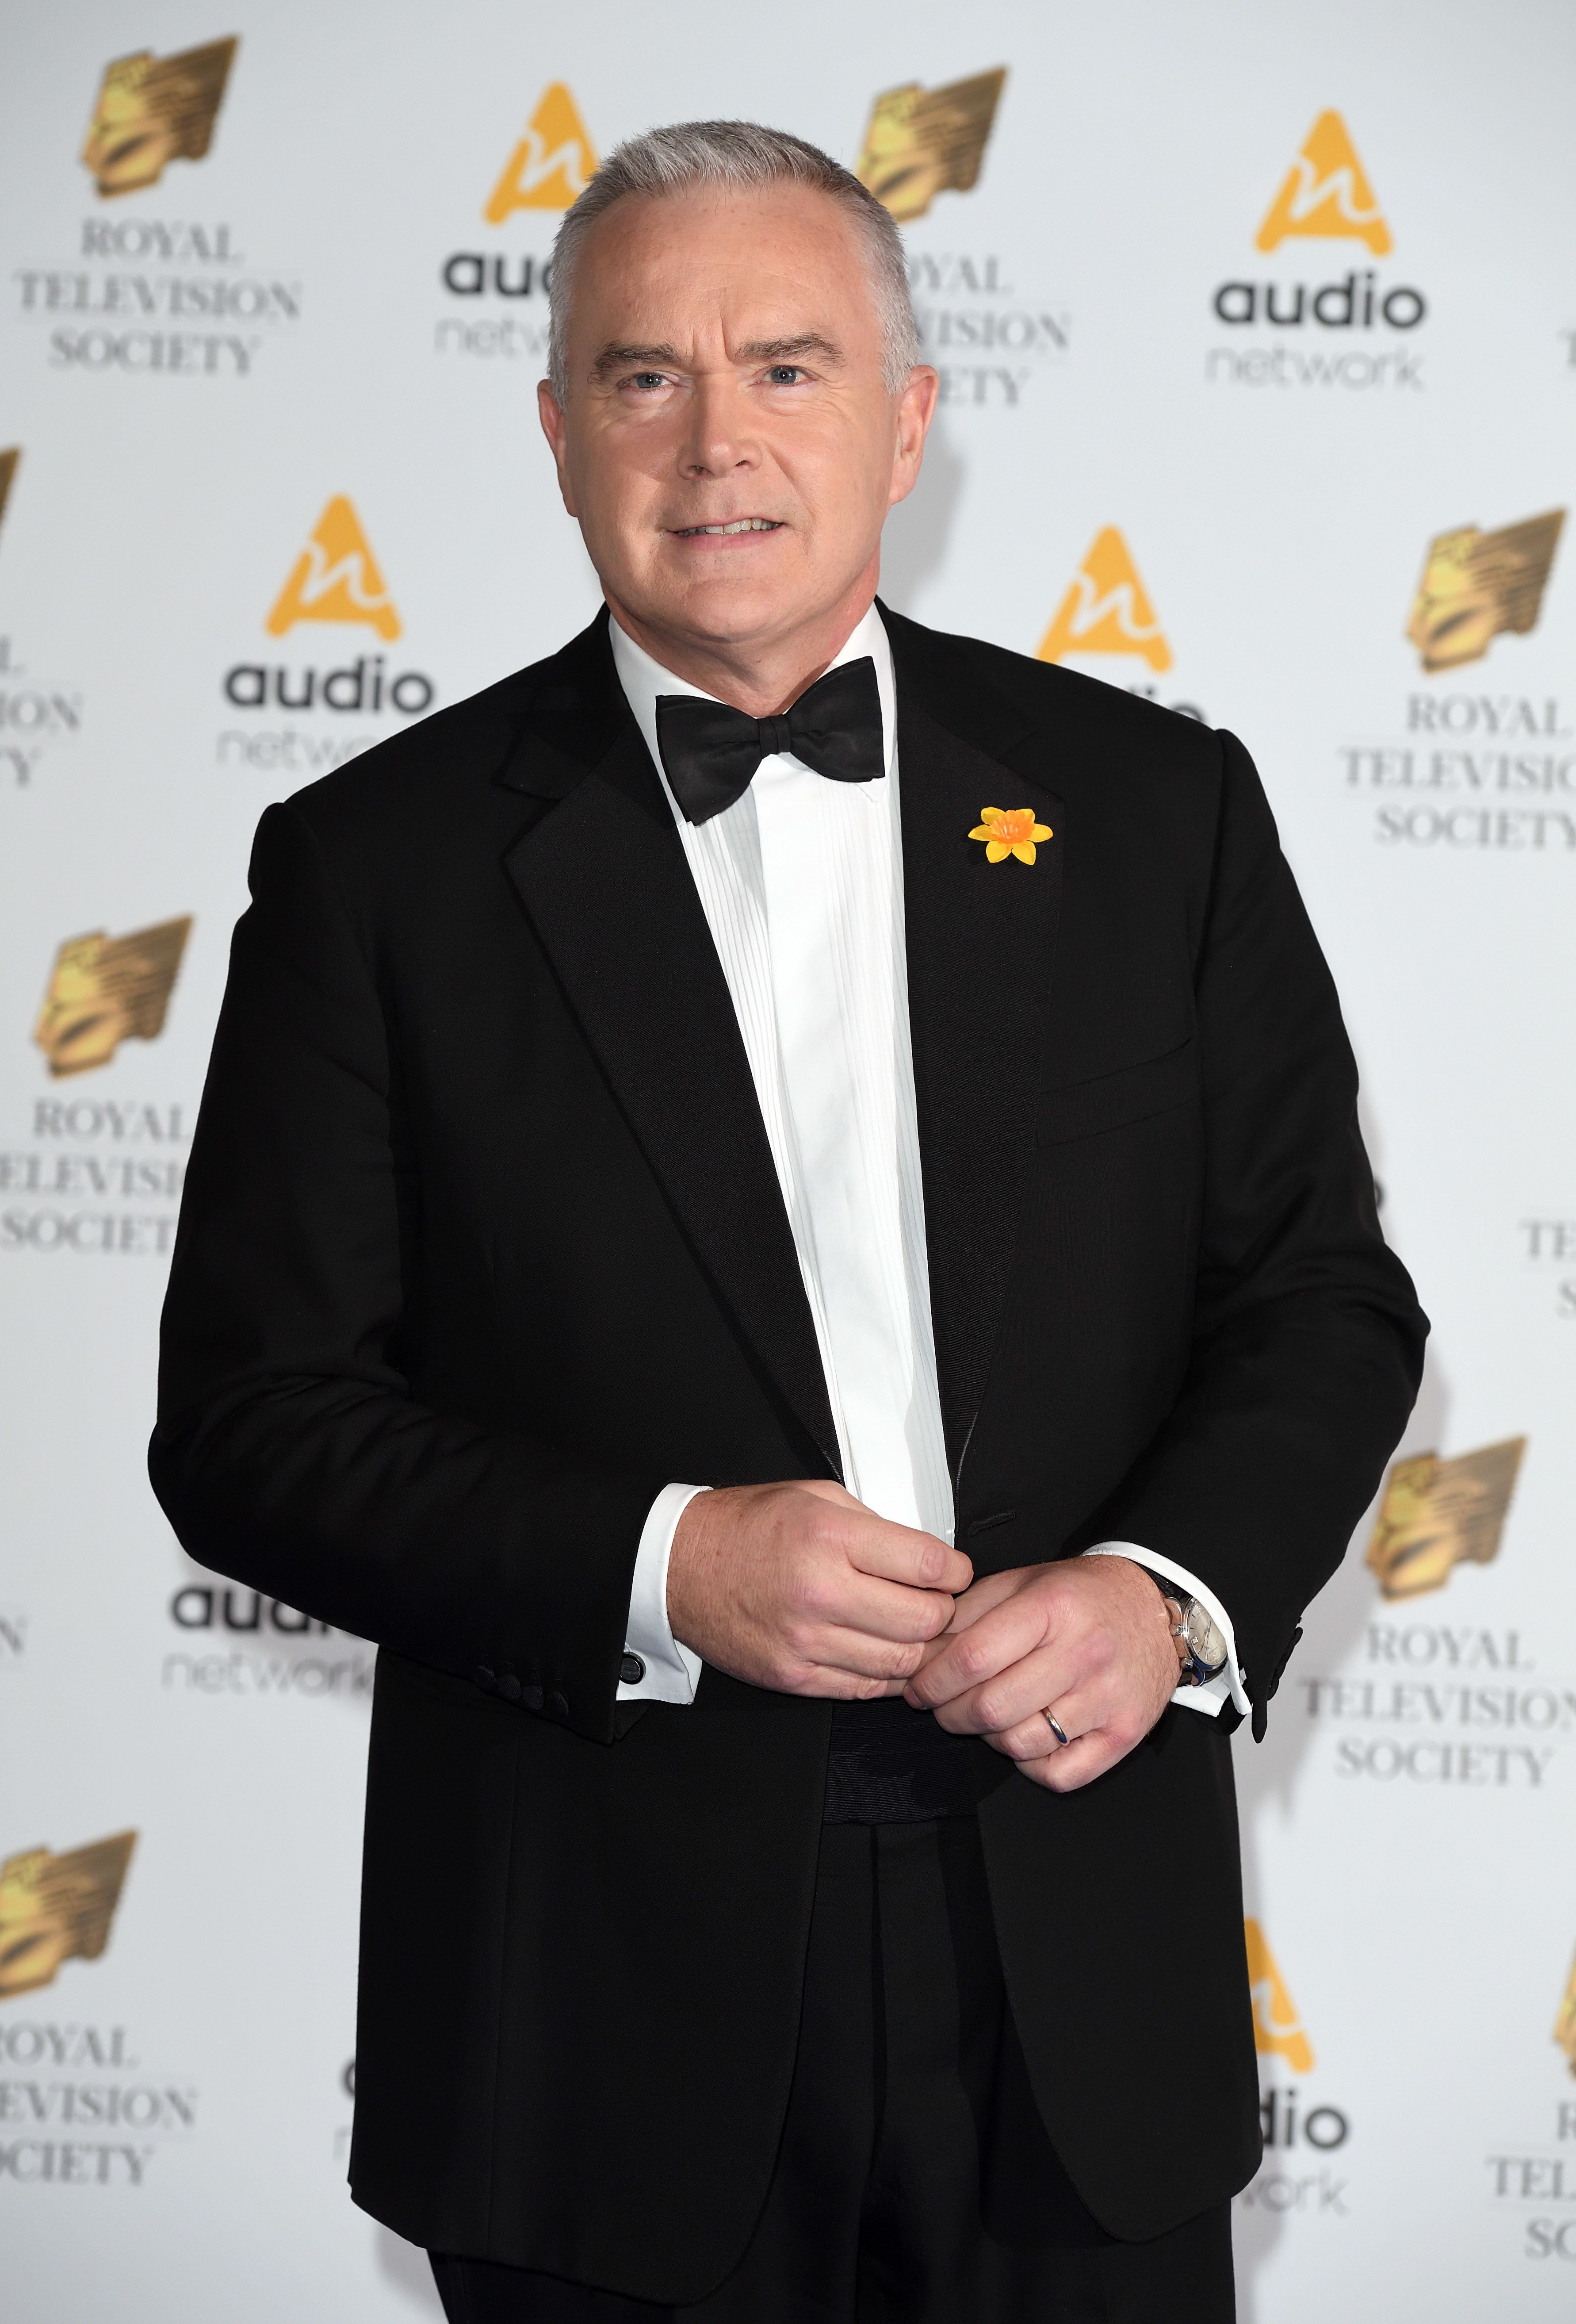 Newsreader Huw Edwards Reveals 'Strictly Come Dancing'